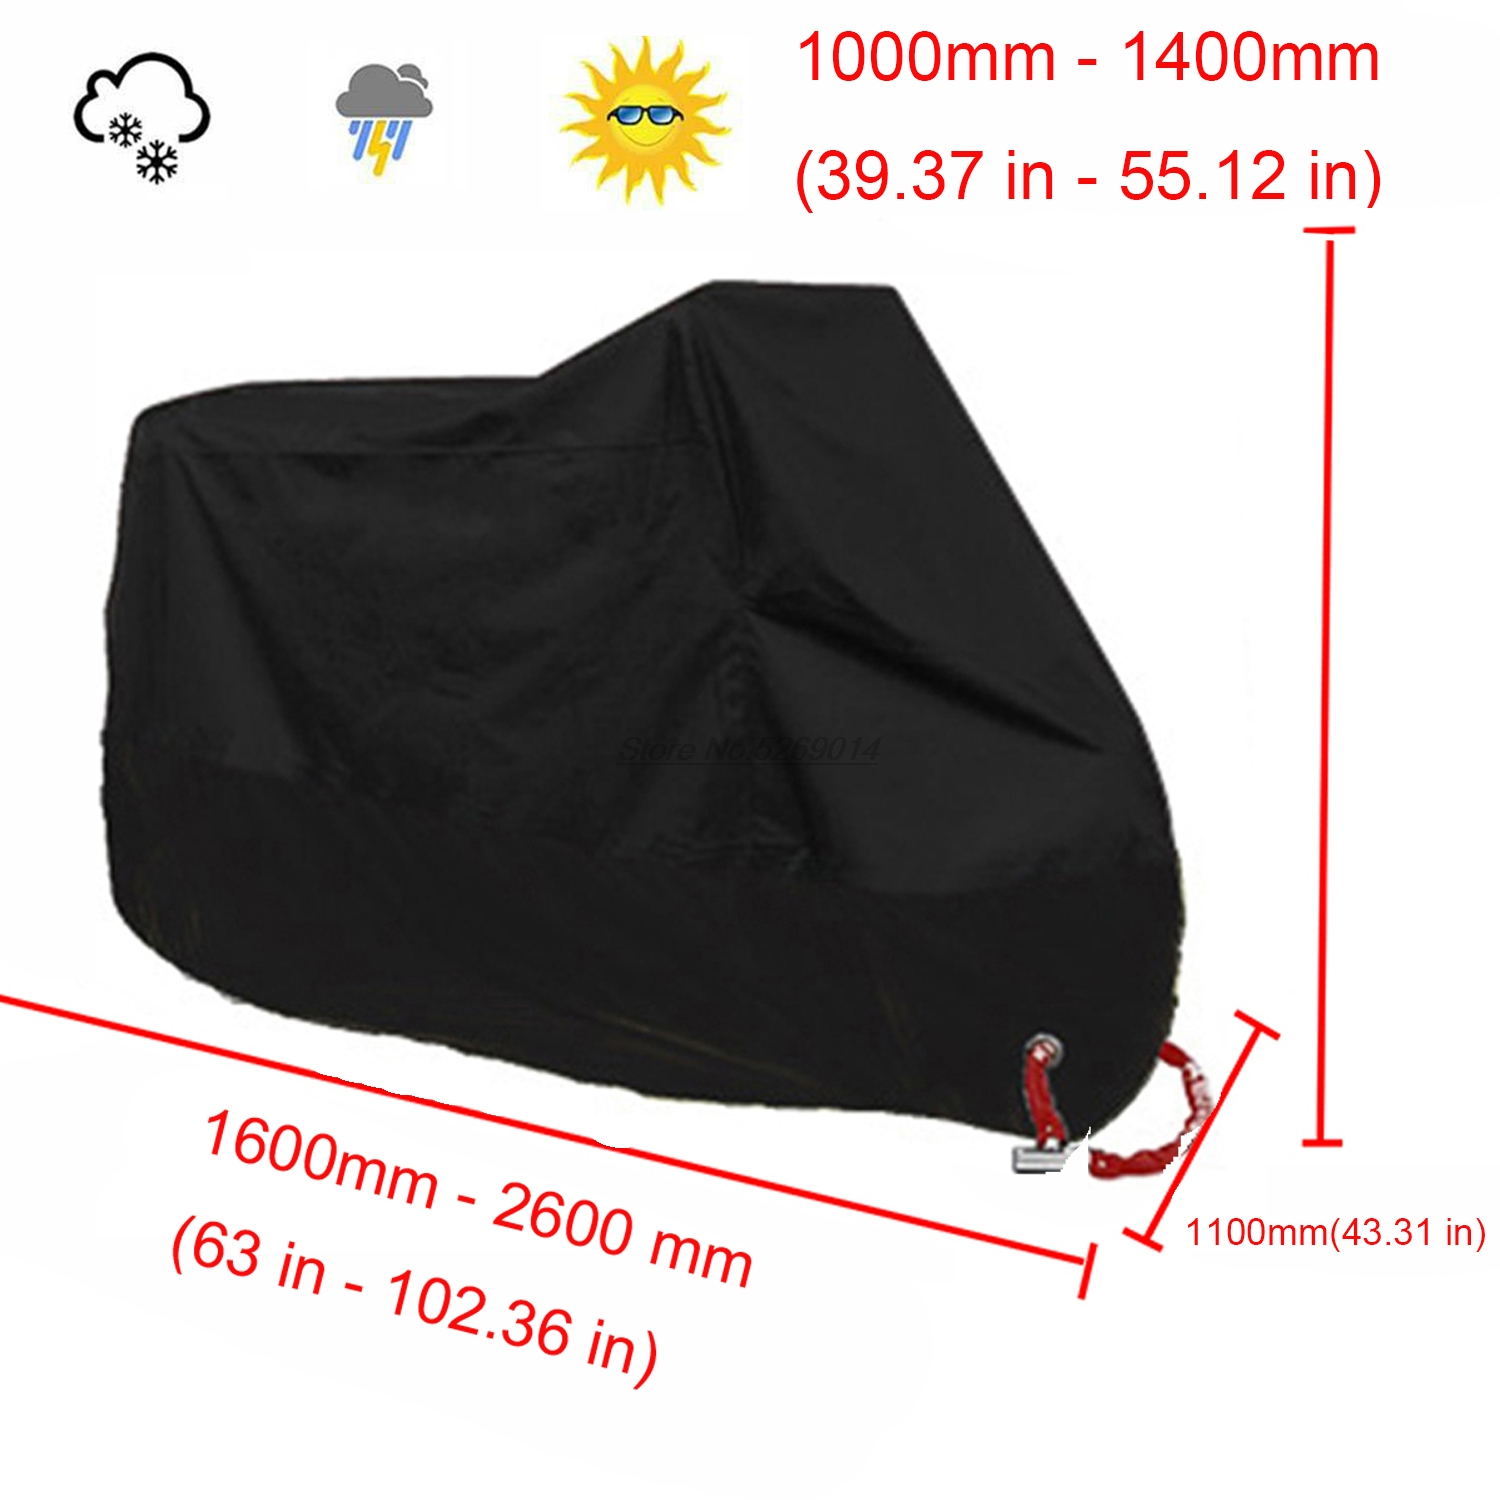 Motorcycle covers UV anti for kawasaki zx duke 250 <font><b>bmw</b></font> <font><b>f</b></font> <font><b>700</b></font> <font><b>gs</b></font> kawasaki 250r gsx-s750 flag harley harley iron 883 honda dio KTM image